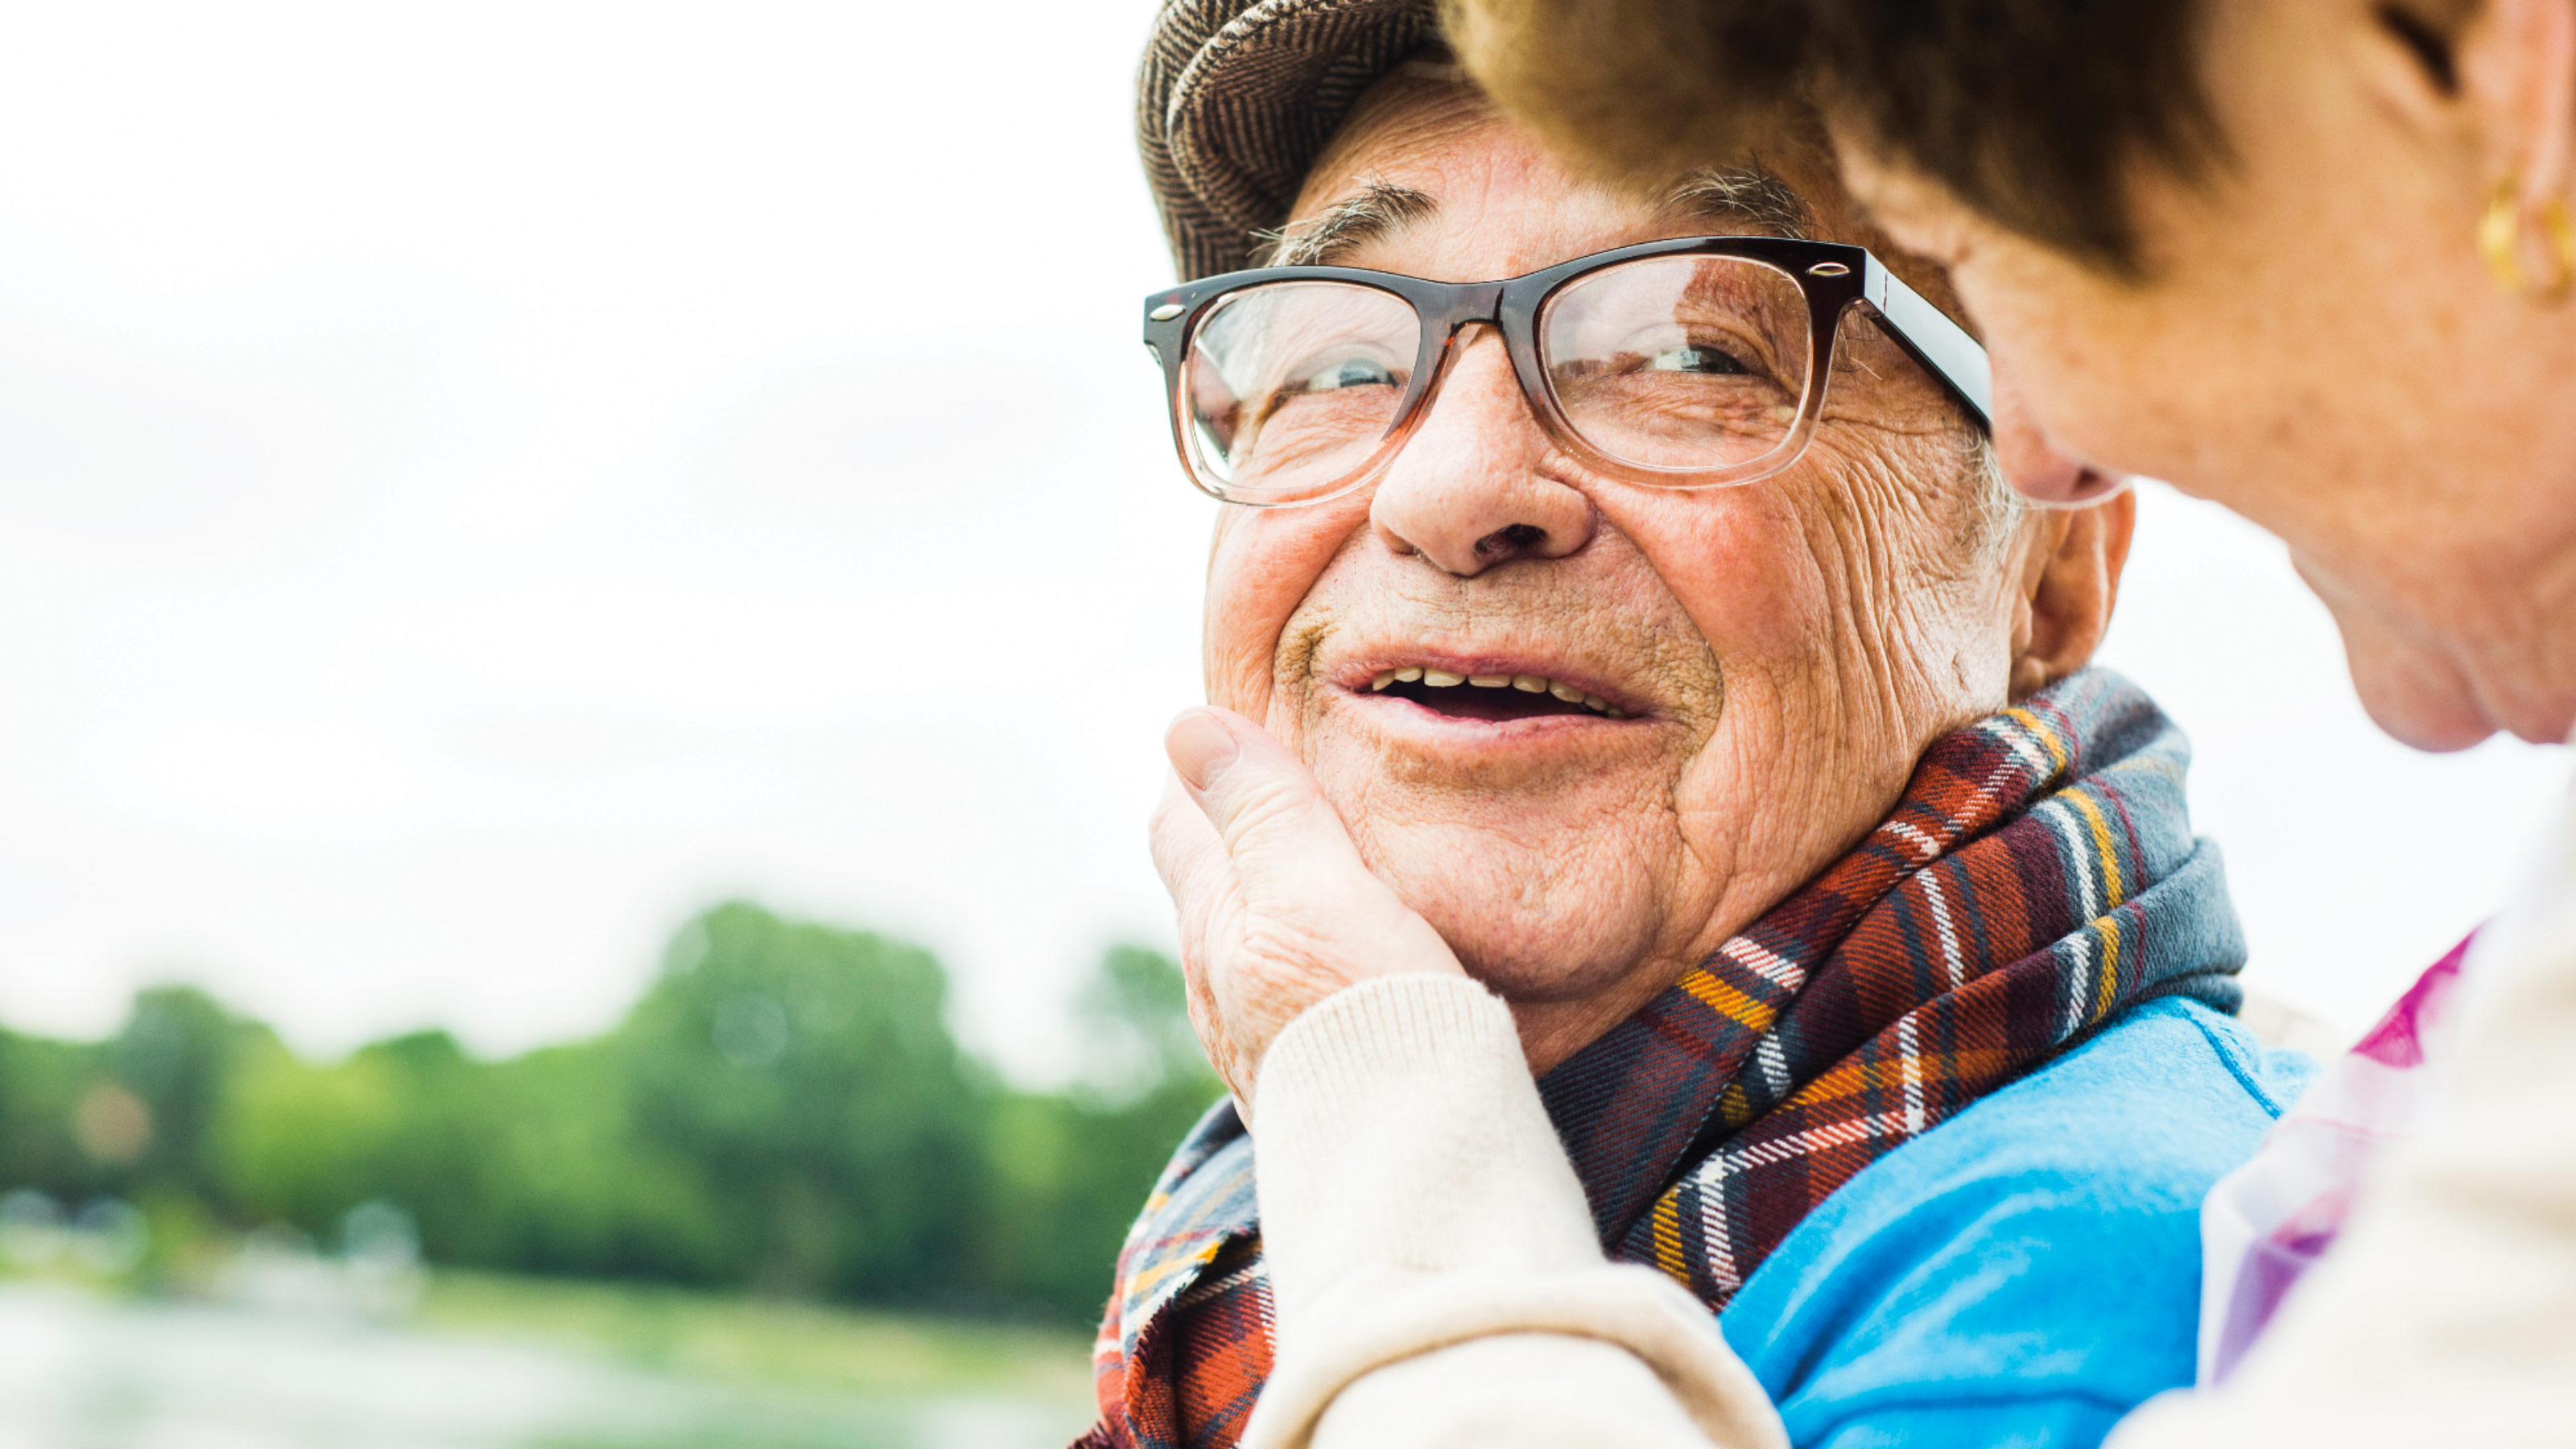 Image of an elderly man outdoors, and a woman beside him who is patting his cheek